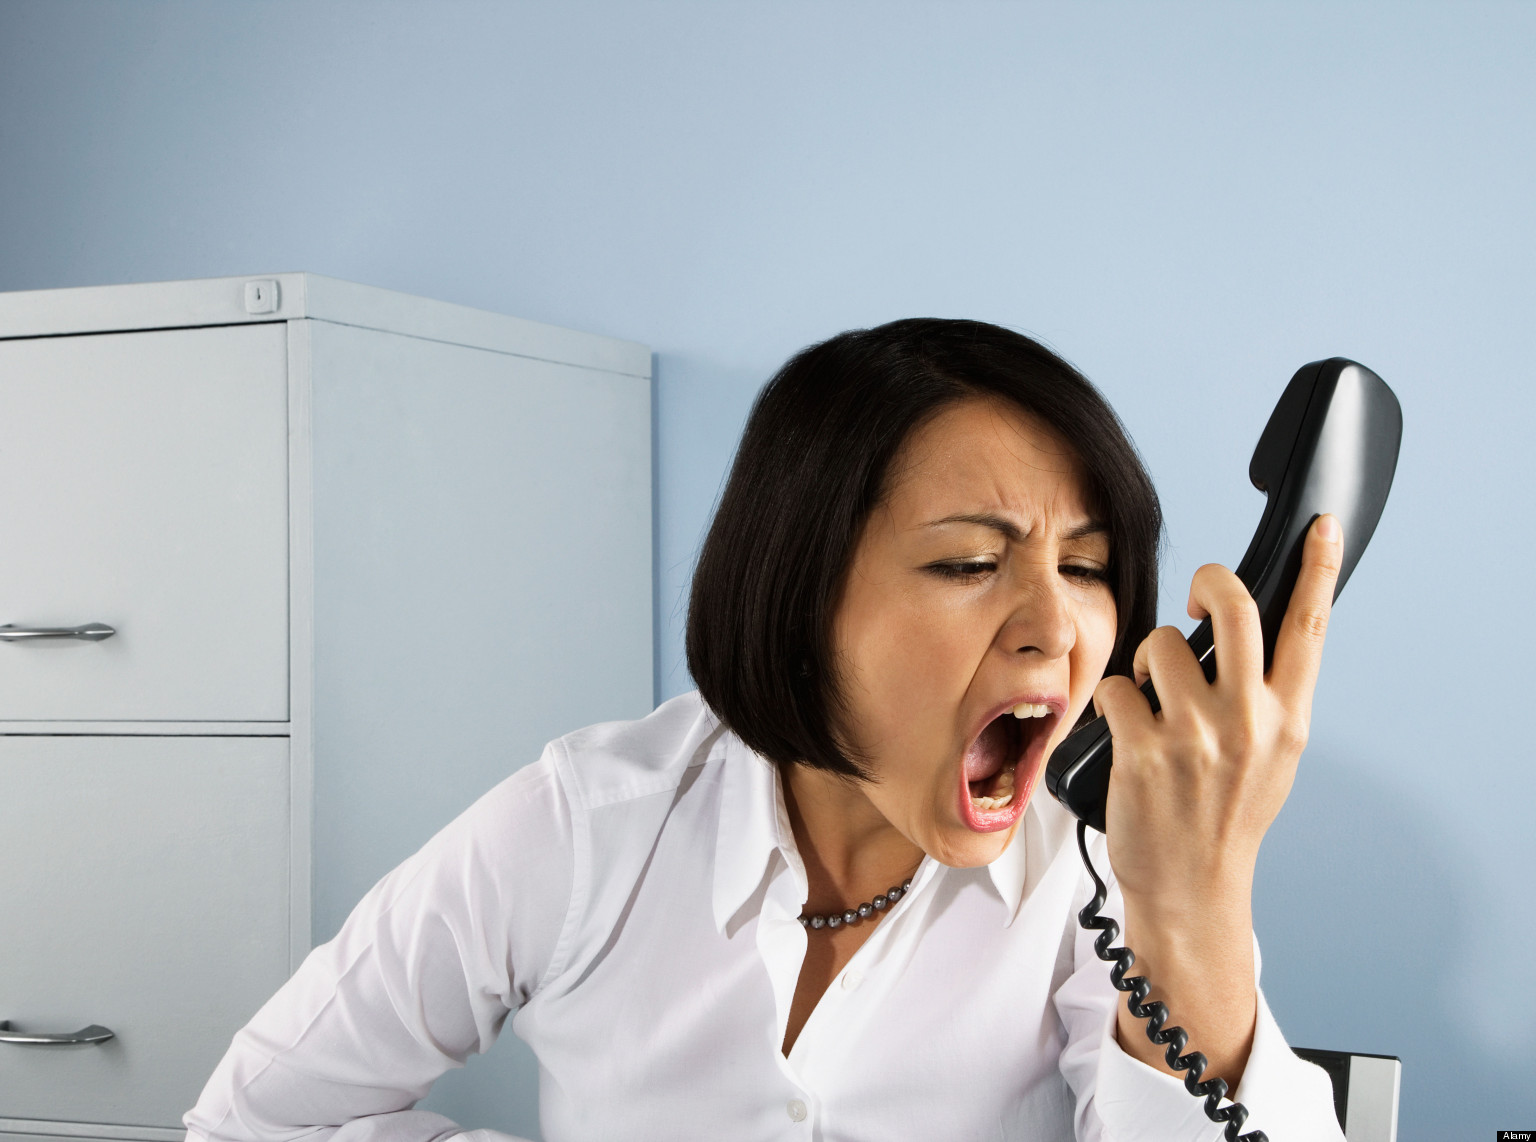 B2T86N Businesswoman shouting at telephone. Image shot 2008. Exact date unknown.